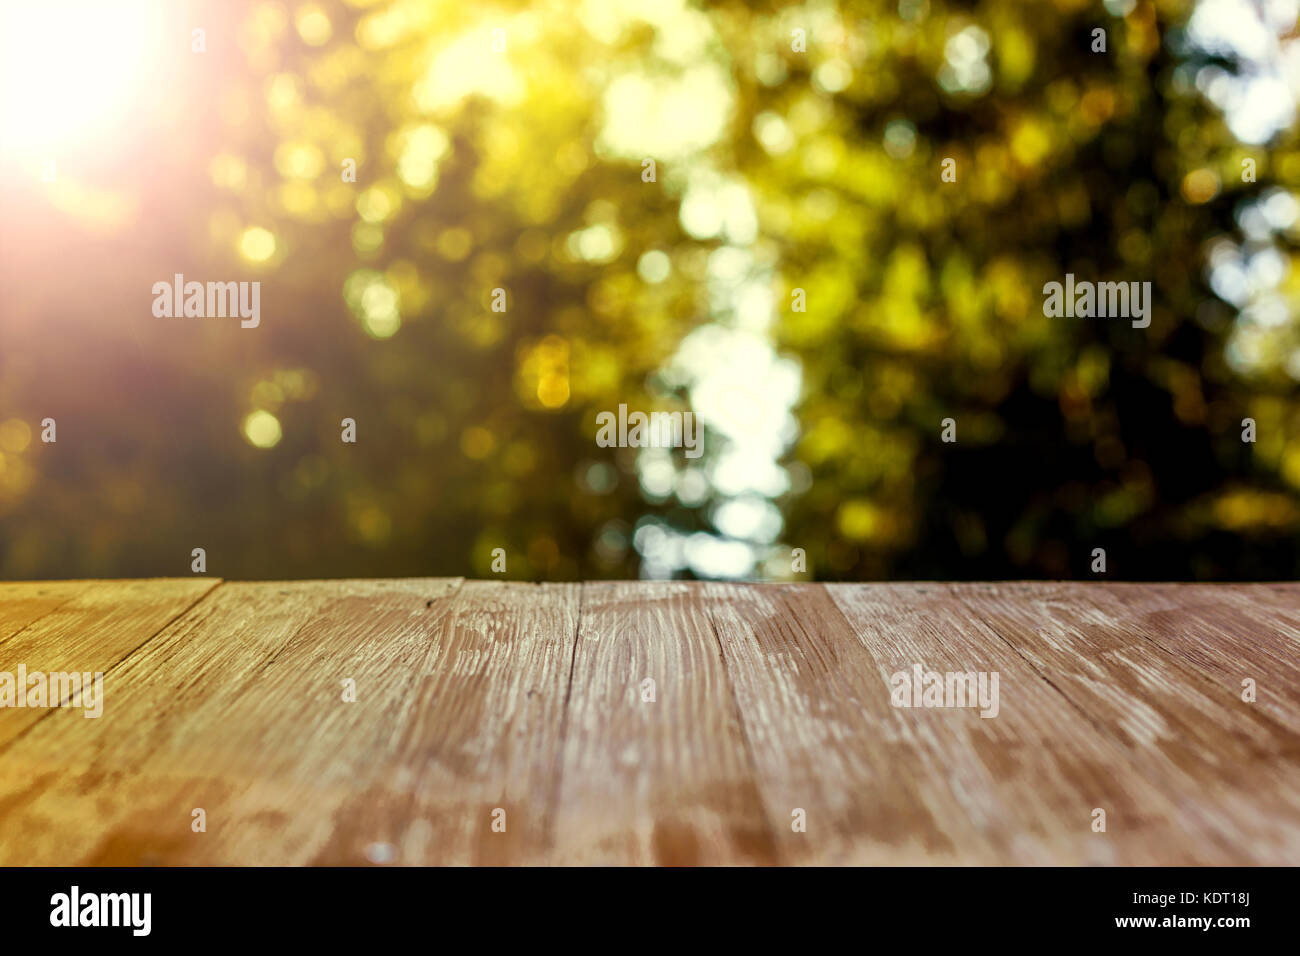 Empty Rustic Wood Table Top On Blurred Forest Background At Summer Can Montage Or Display Your Products